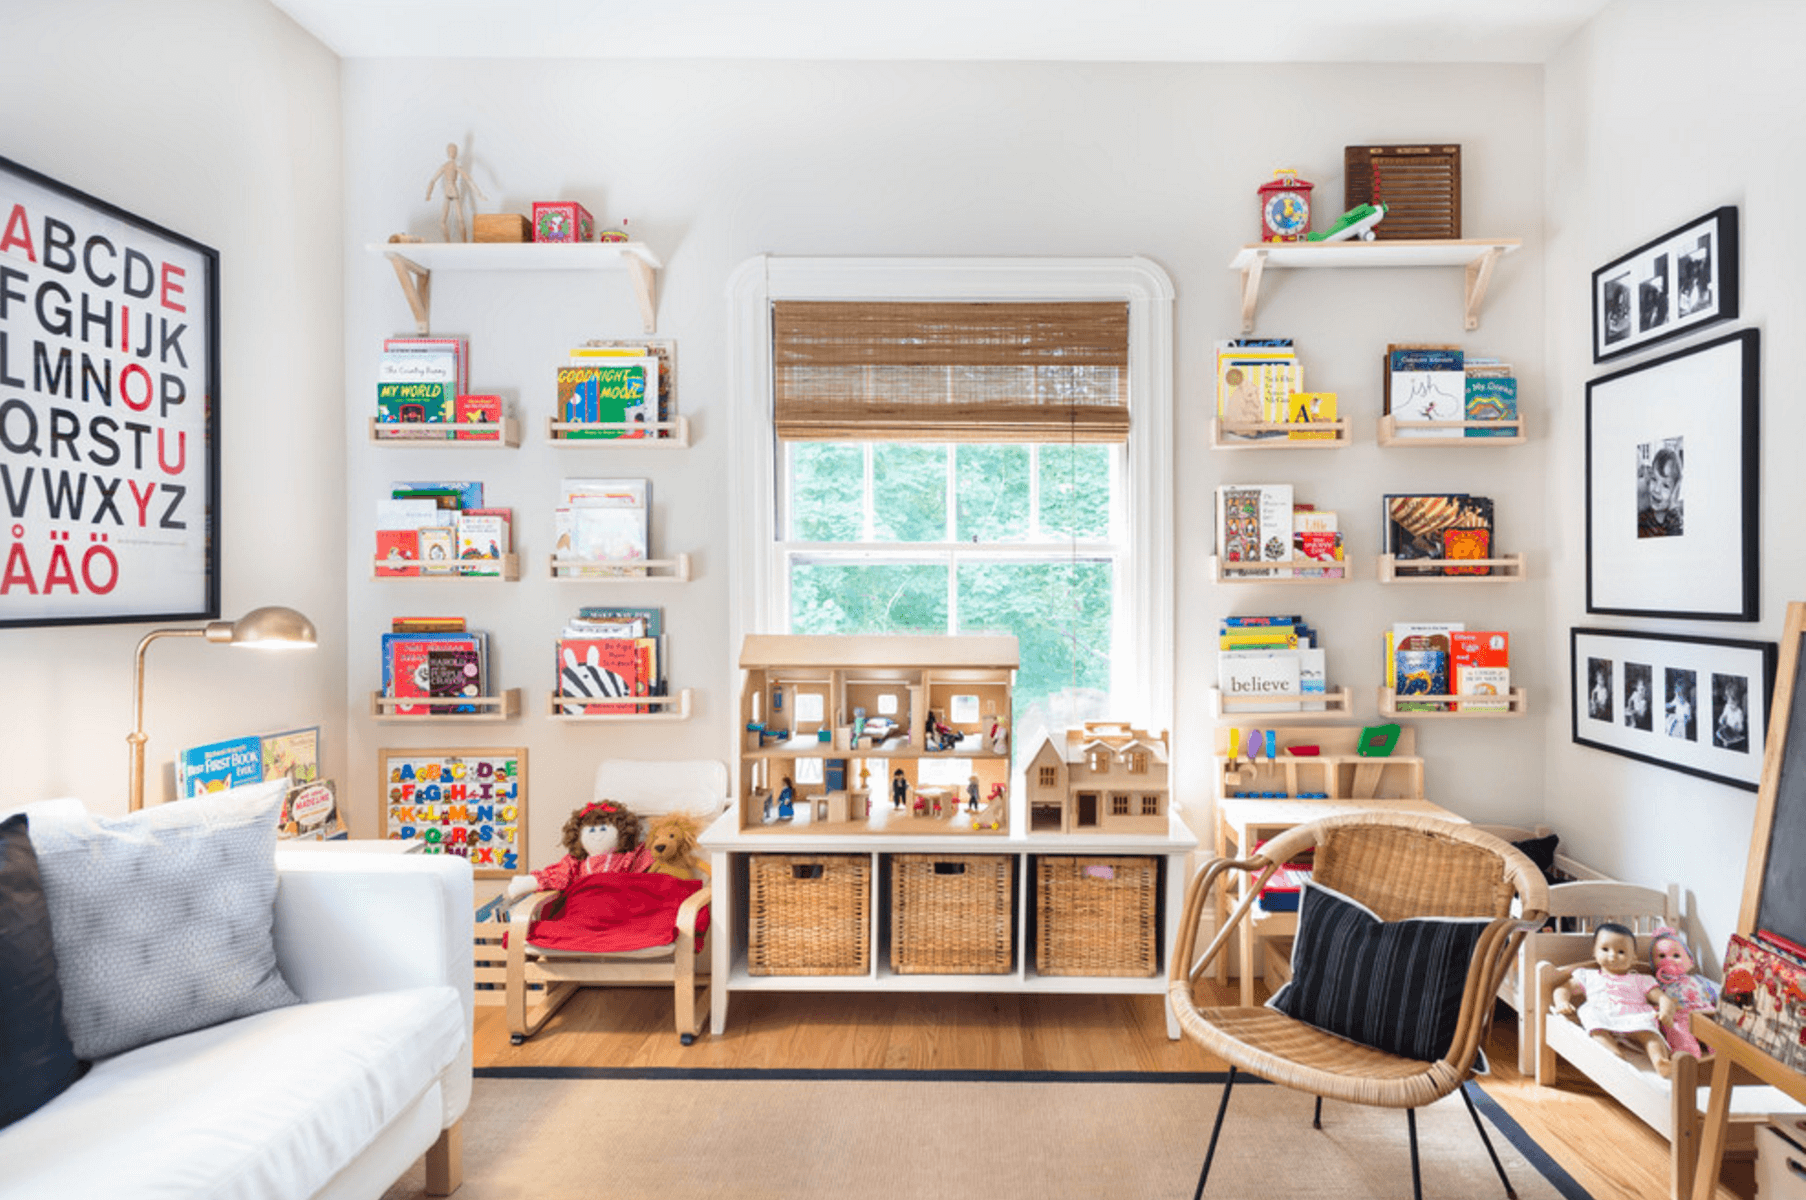 28 ideas for adding color to a kids room freshome com rh freshome com modern child room design child room ceiling design